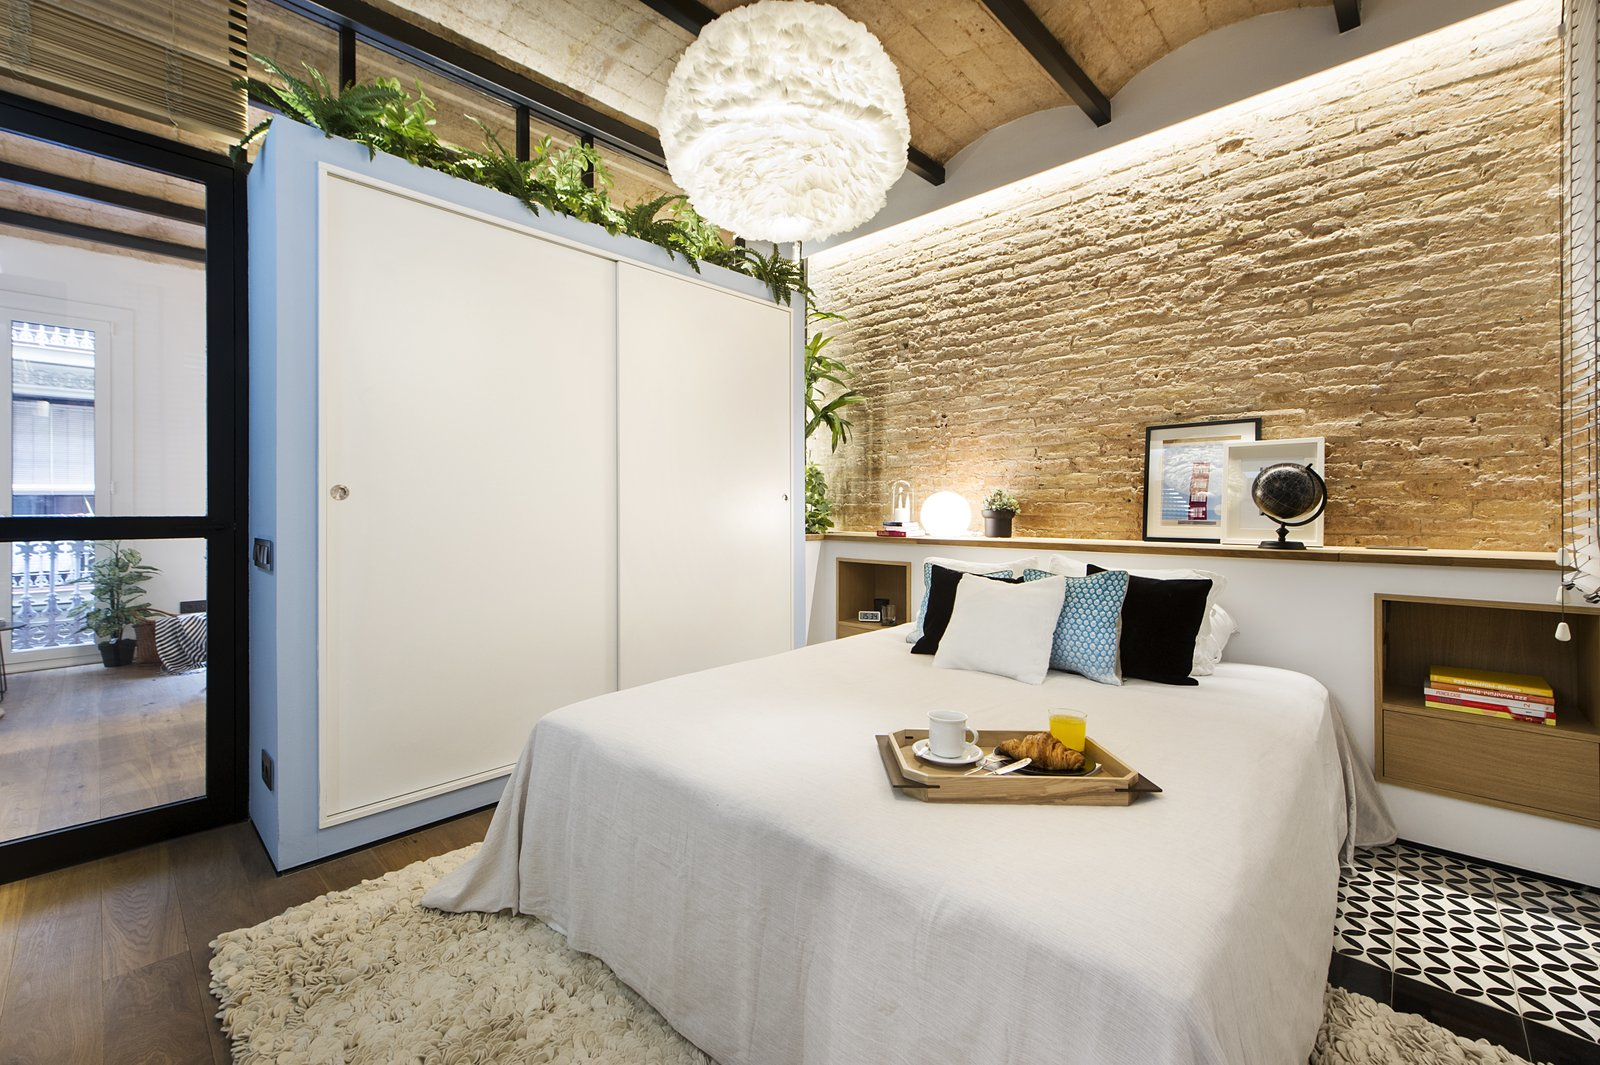 Bedroom, Table Lighting, Bed, Storage, Pendant Lighting, Medium Hardwood Floor, and Ceramic Tile Floor  Photo 6 of 11 in A Smart Layout Maximizes Space in This Compact Urban Beach Apartment in Barcelona